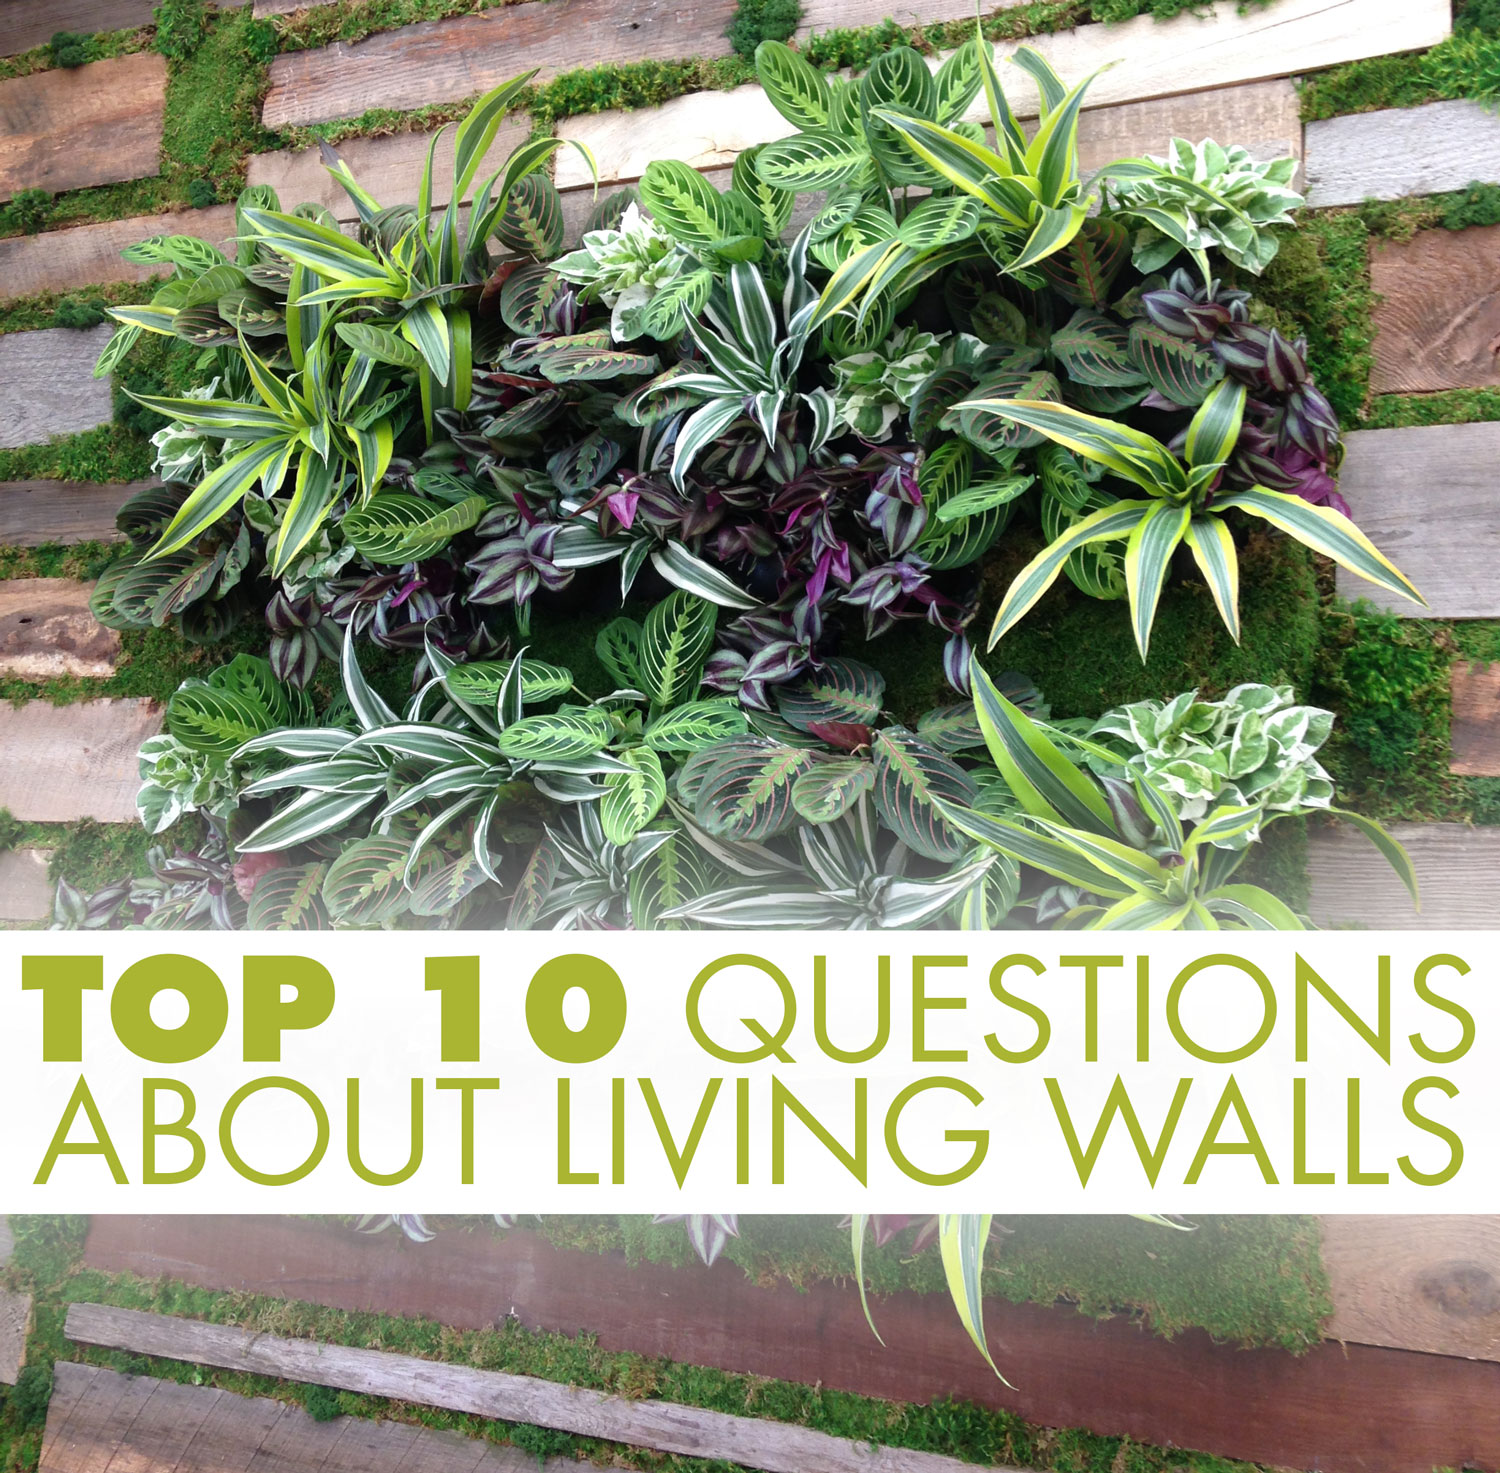 Top 10 questions about Living Walls